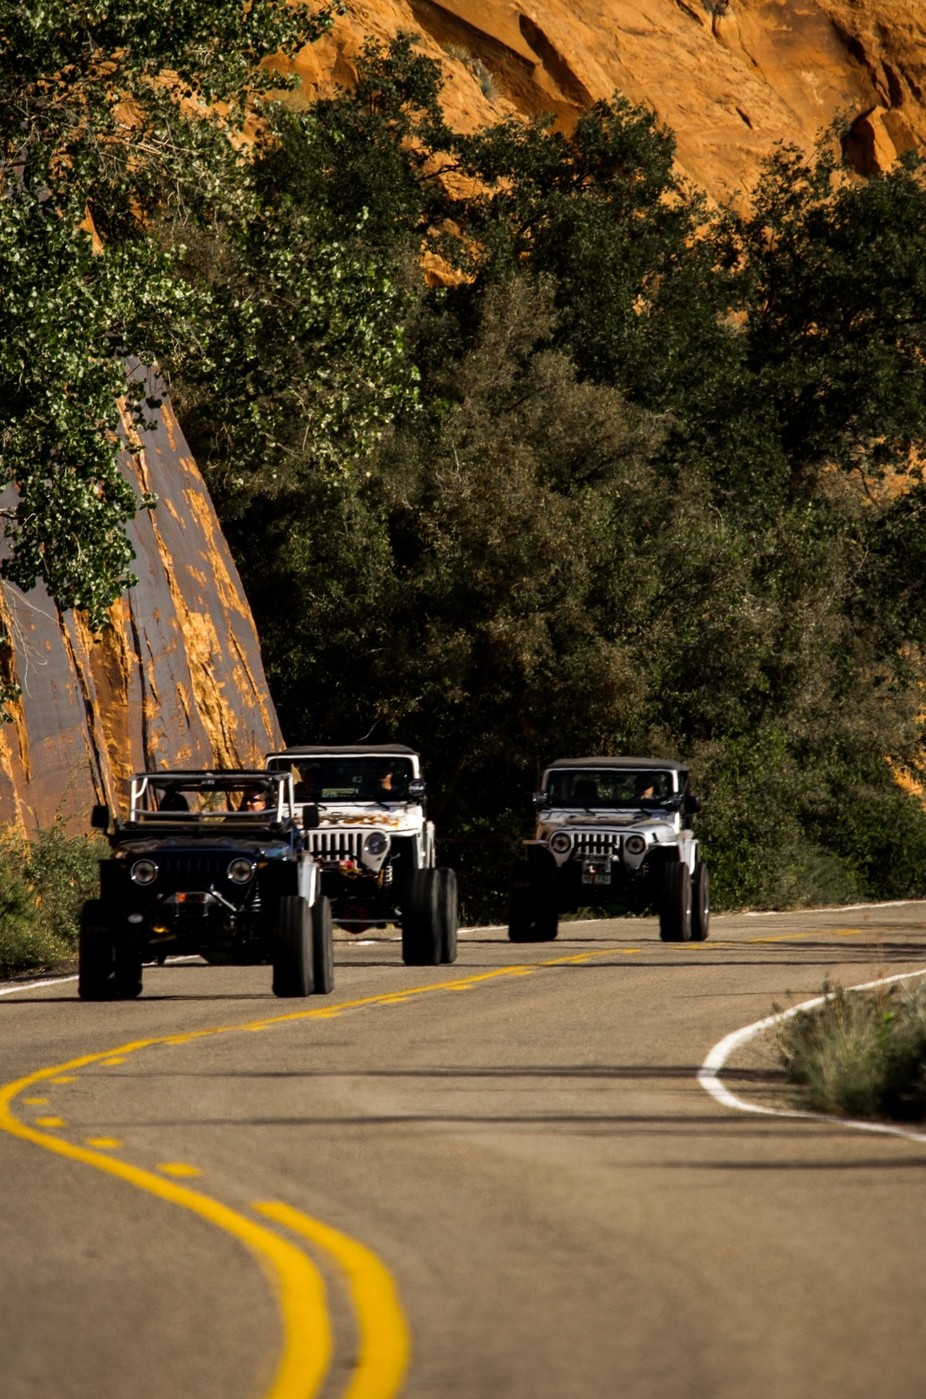 Jeep, Jeep, and Jeep by steveyancey - My Favorite Car Photo Contest